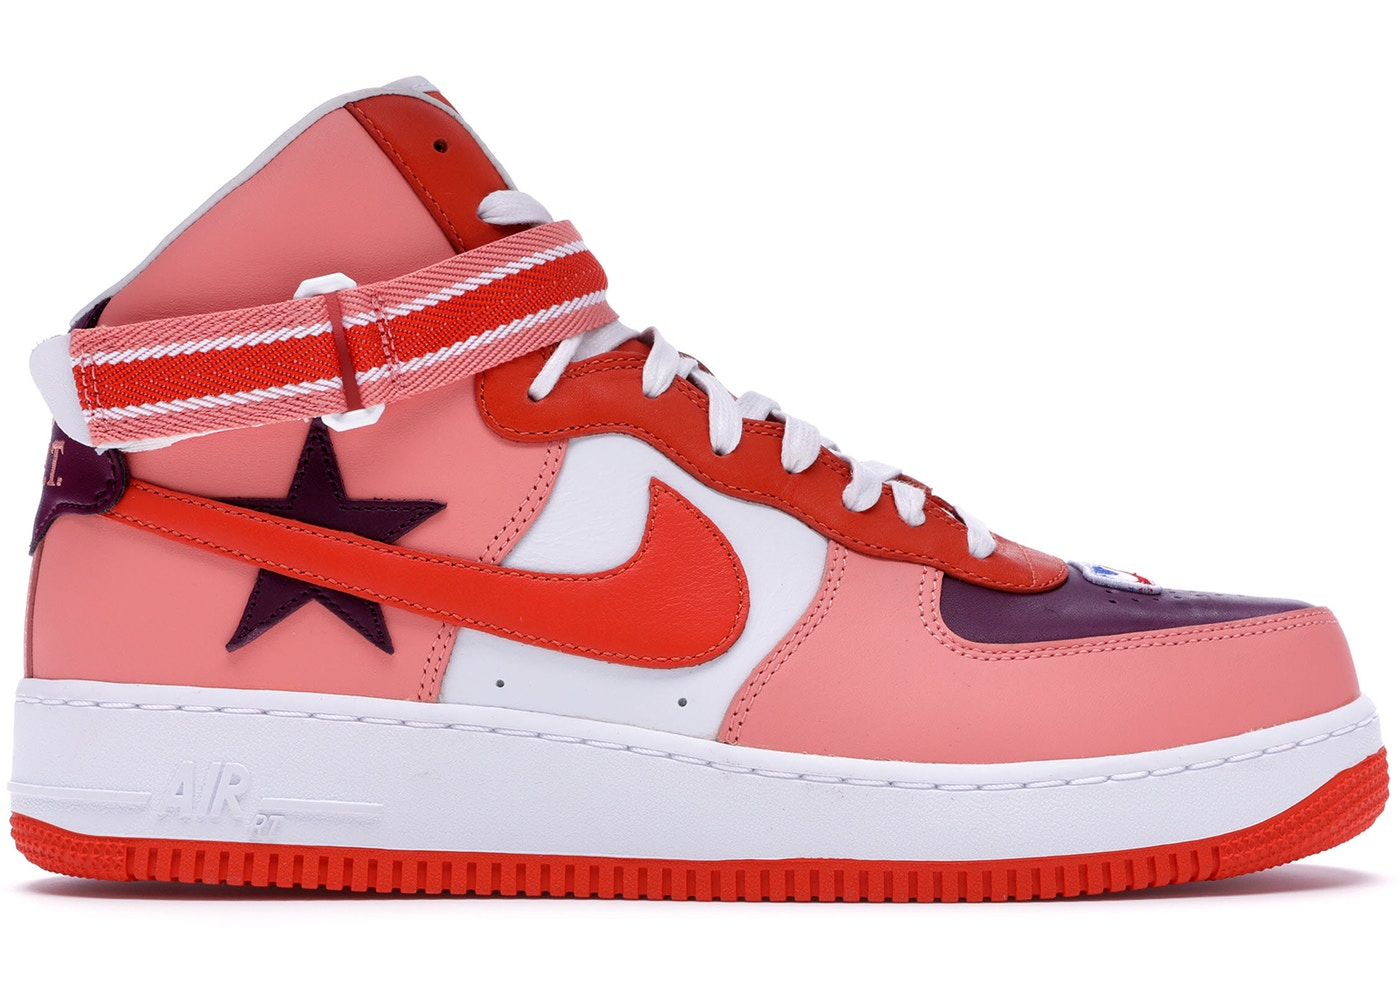 brand new fb9be 51c69 Air Force 1 High Riccardo Tisci All-Star 2018 (Pink) - AQ3366-601